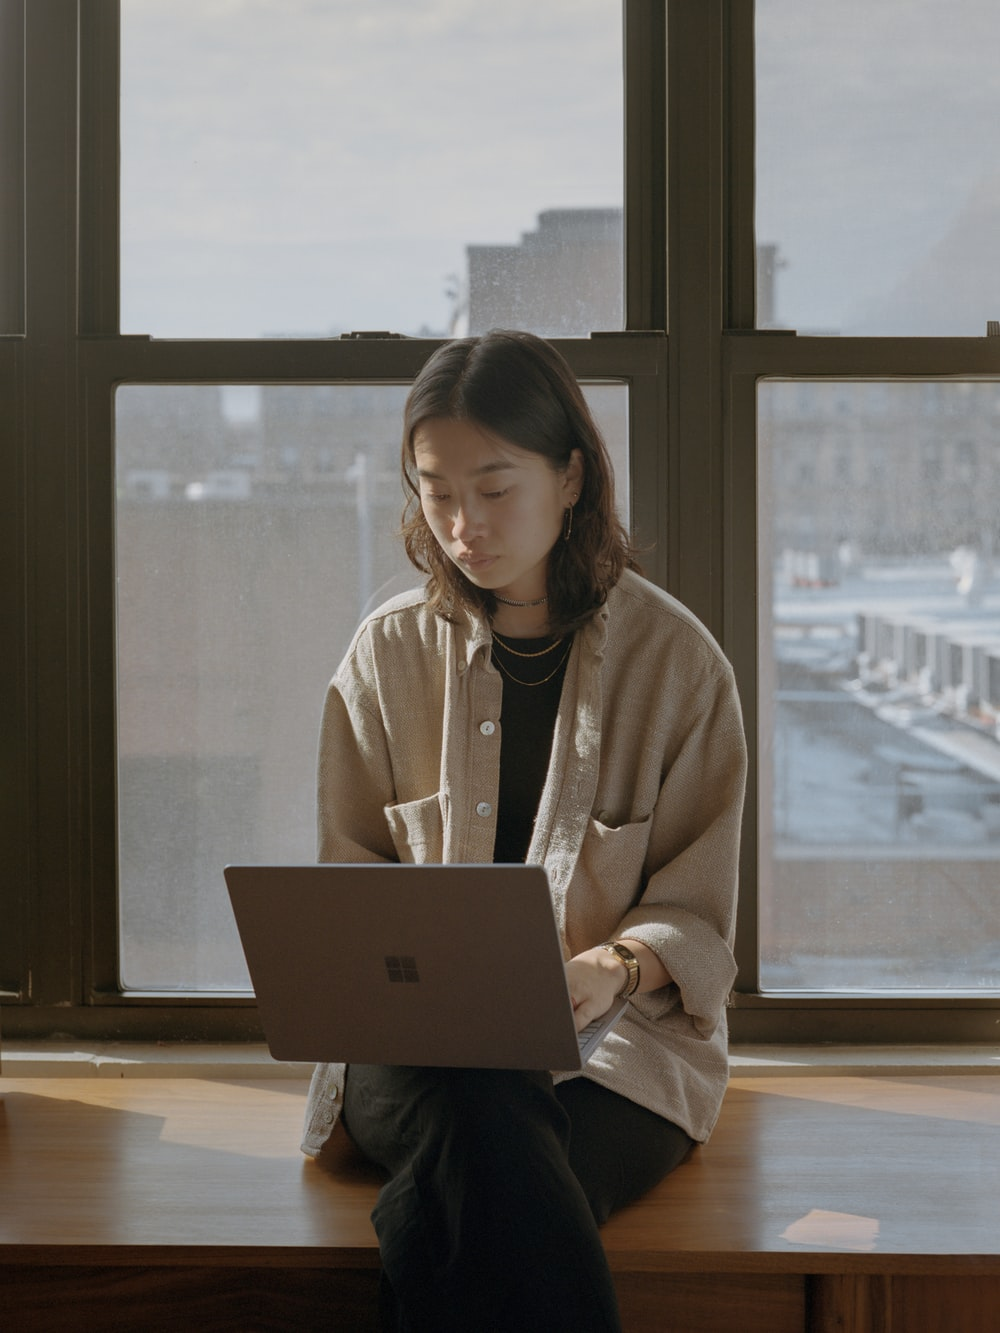 woman in white shirt using Surface computer